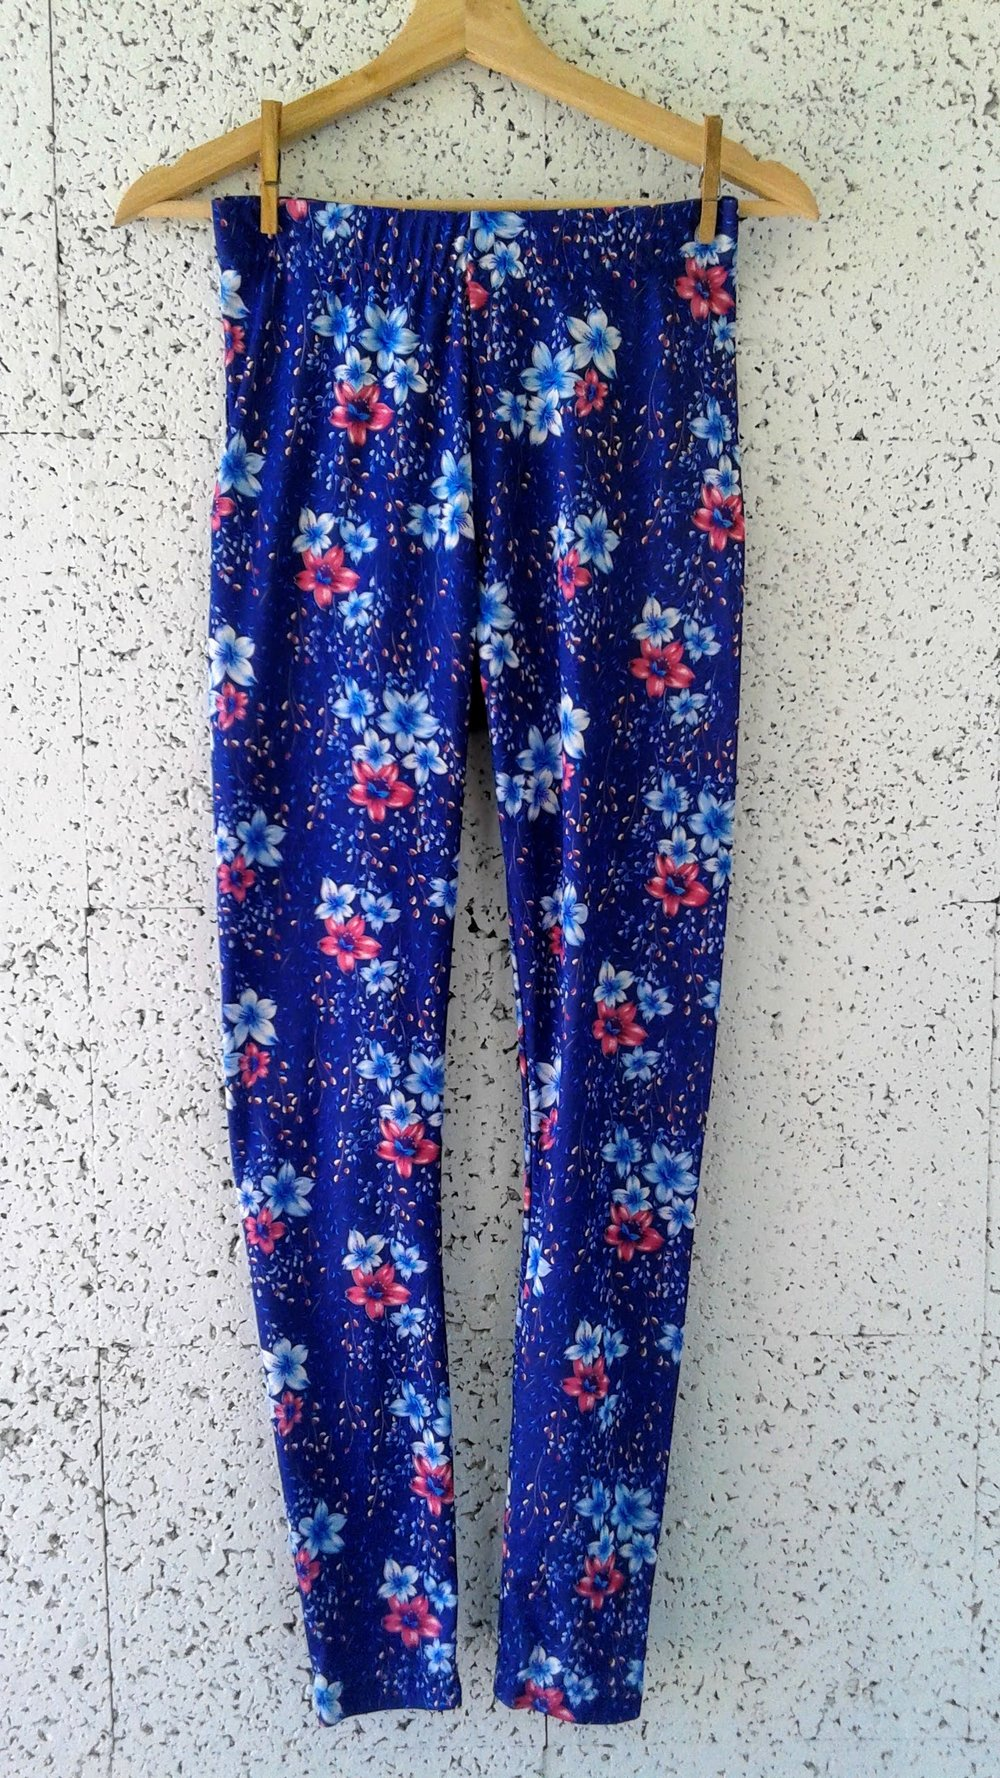 Fridget pants; Size XS, $24